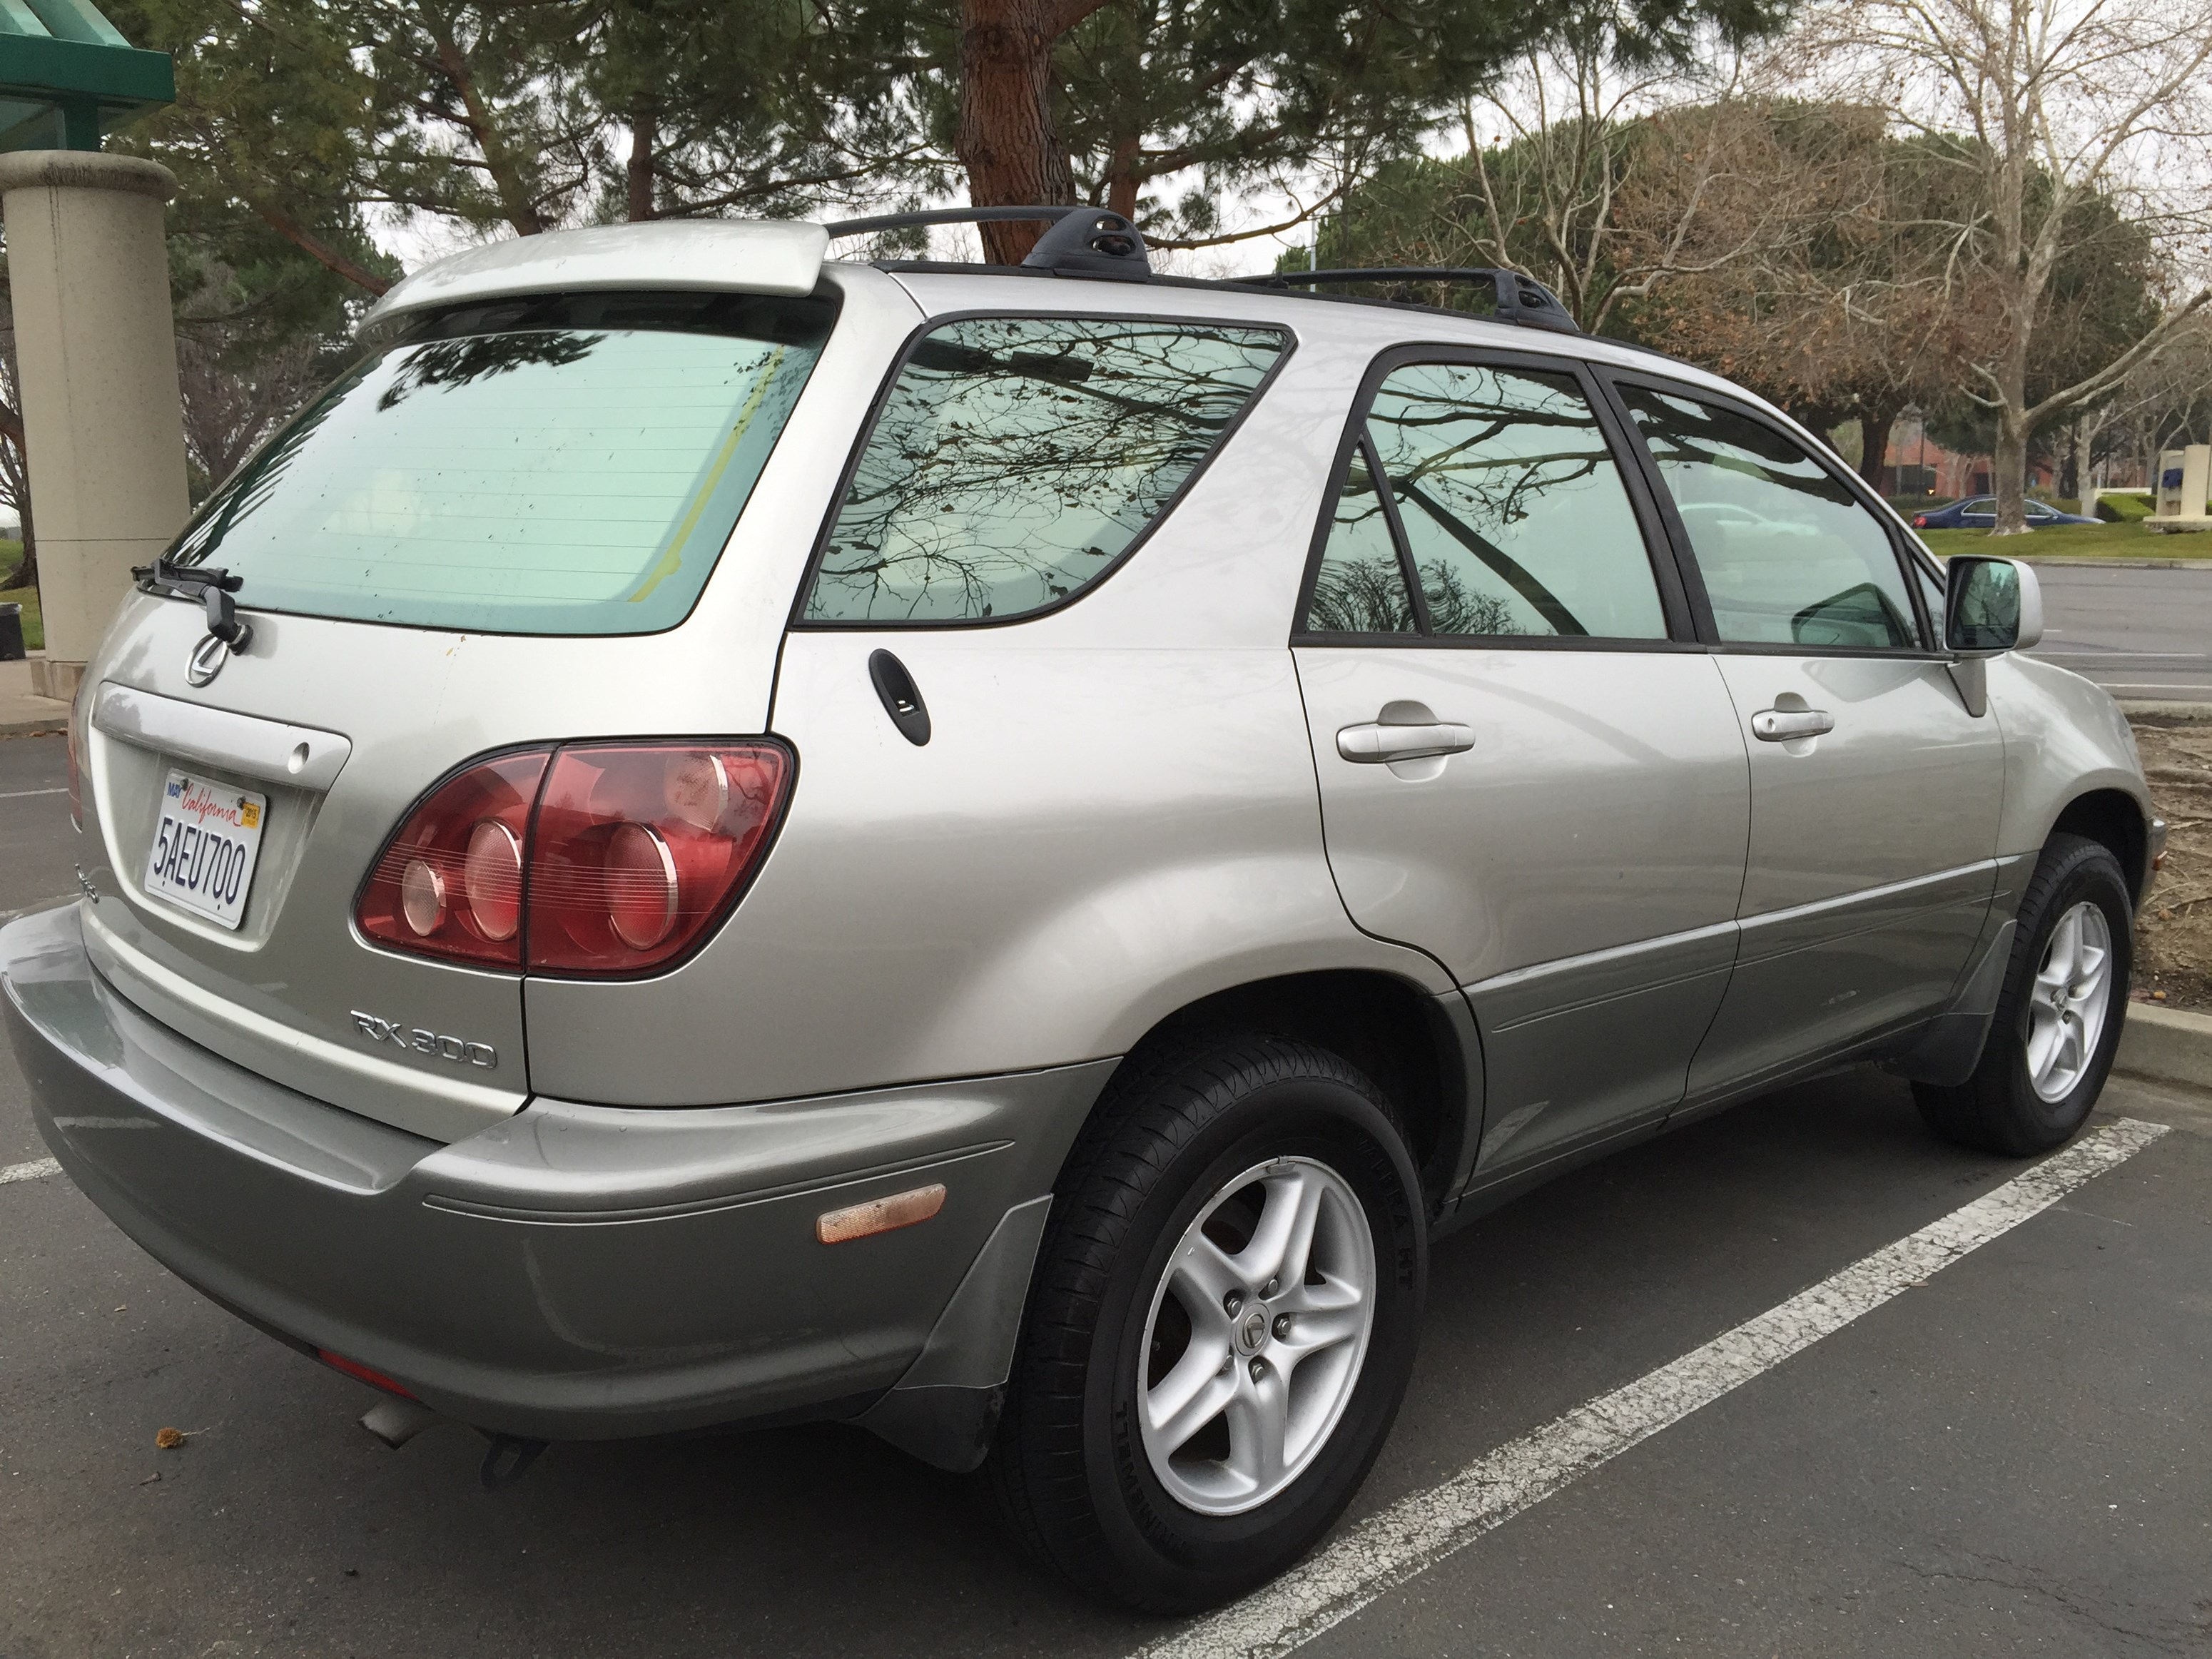 Lexus RX 300 For Sale Used Lexus RX 300 Cars in Fremont AD